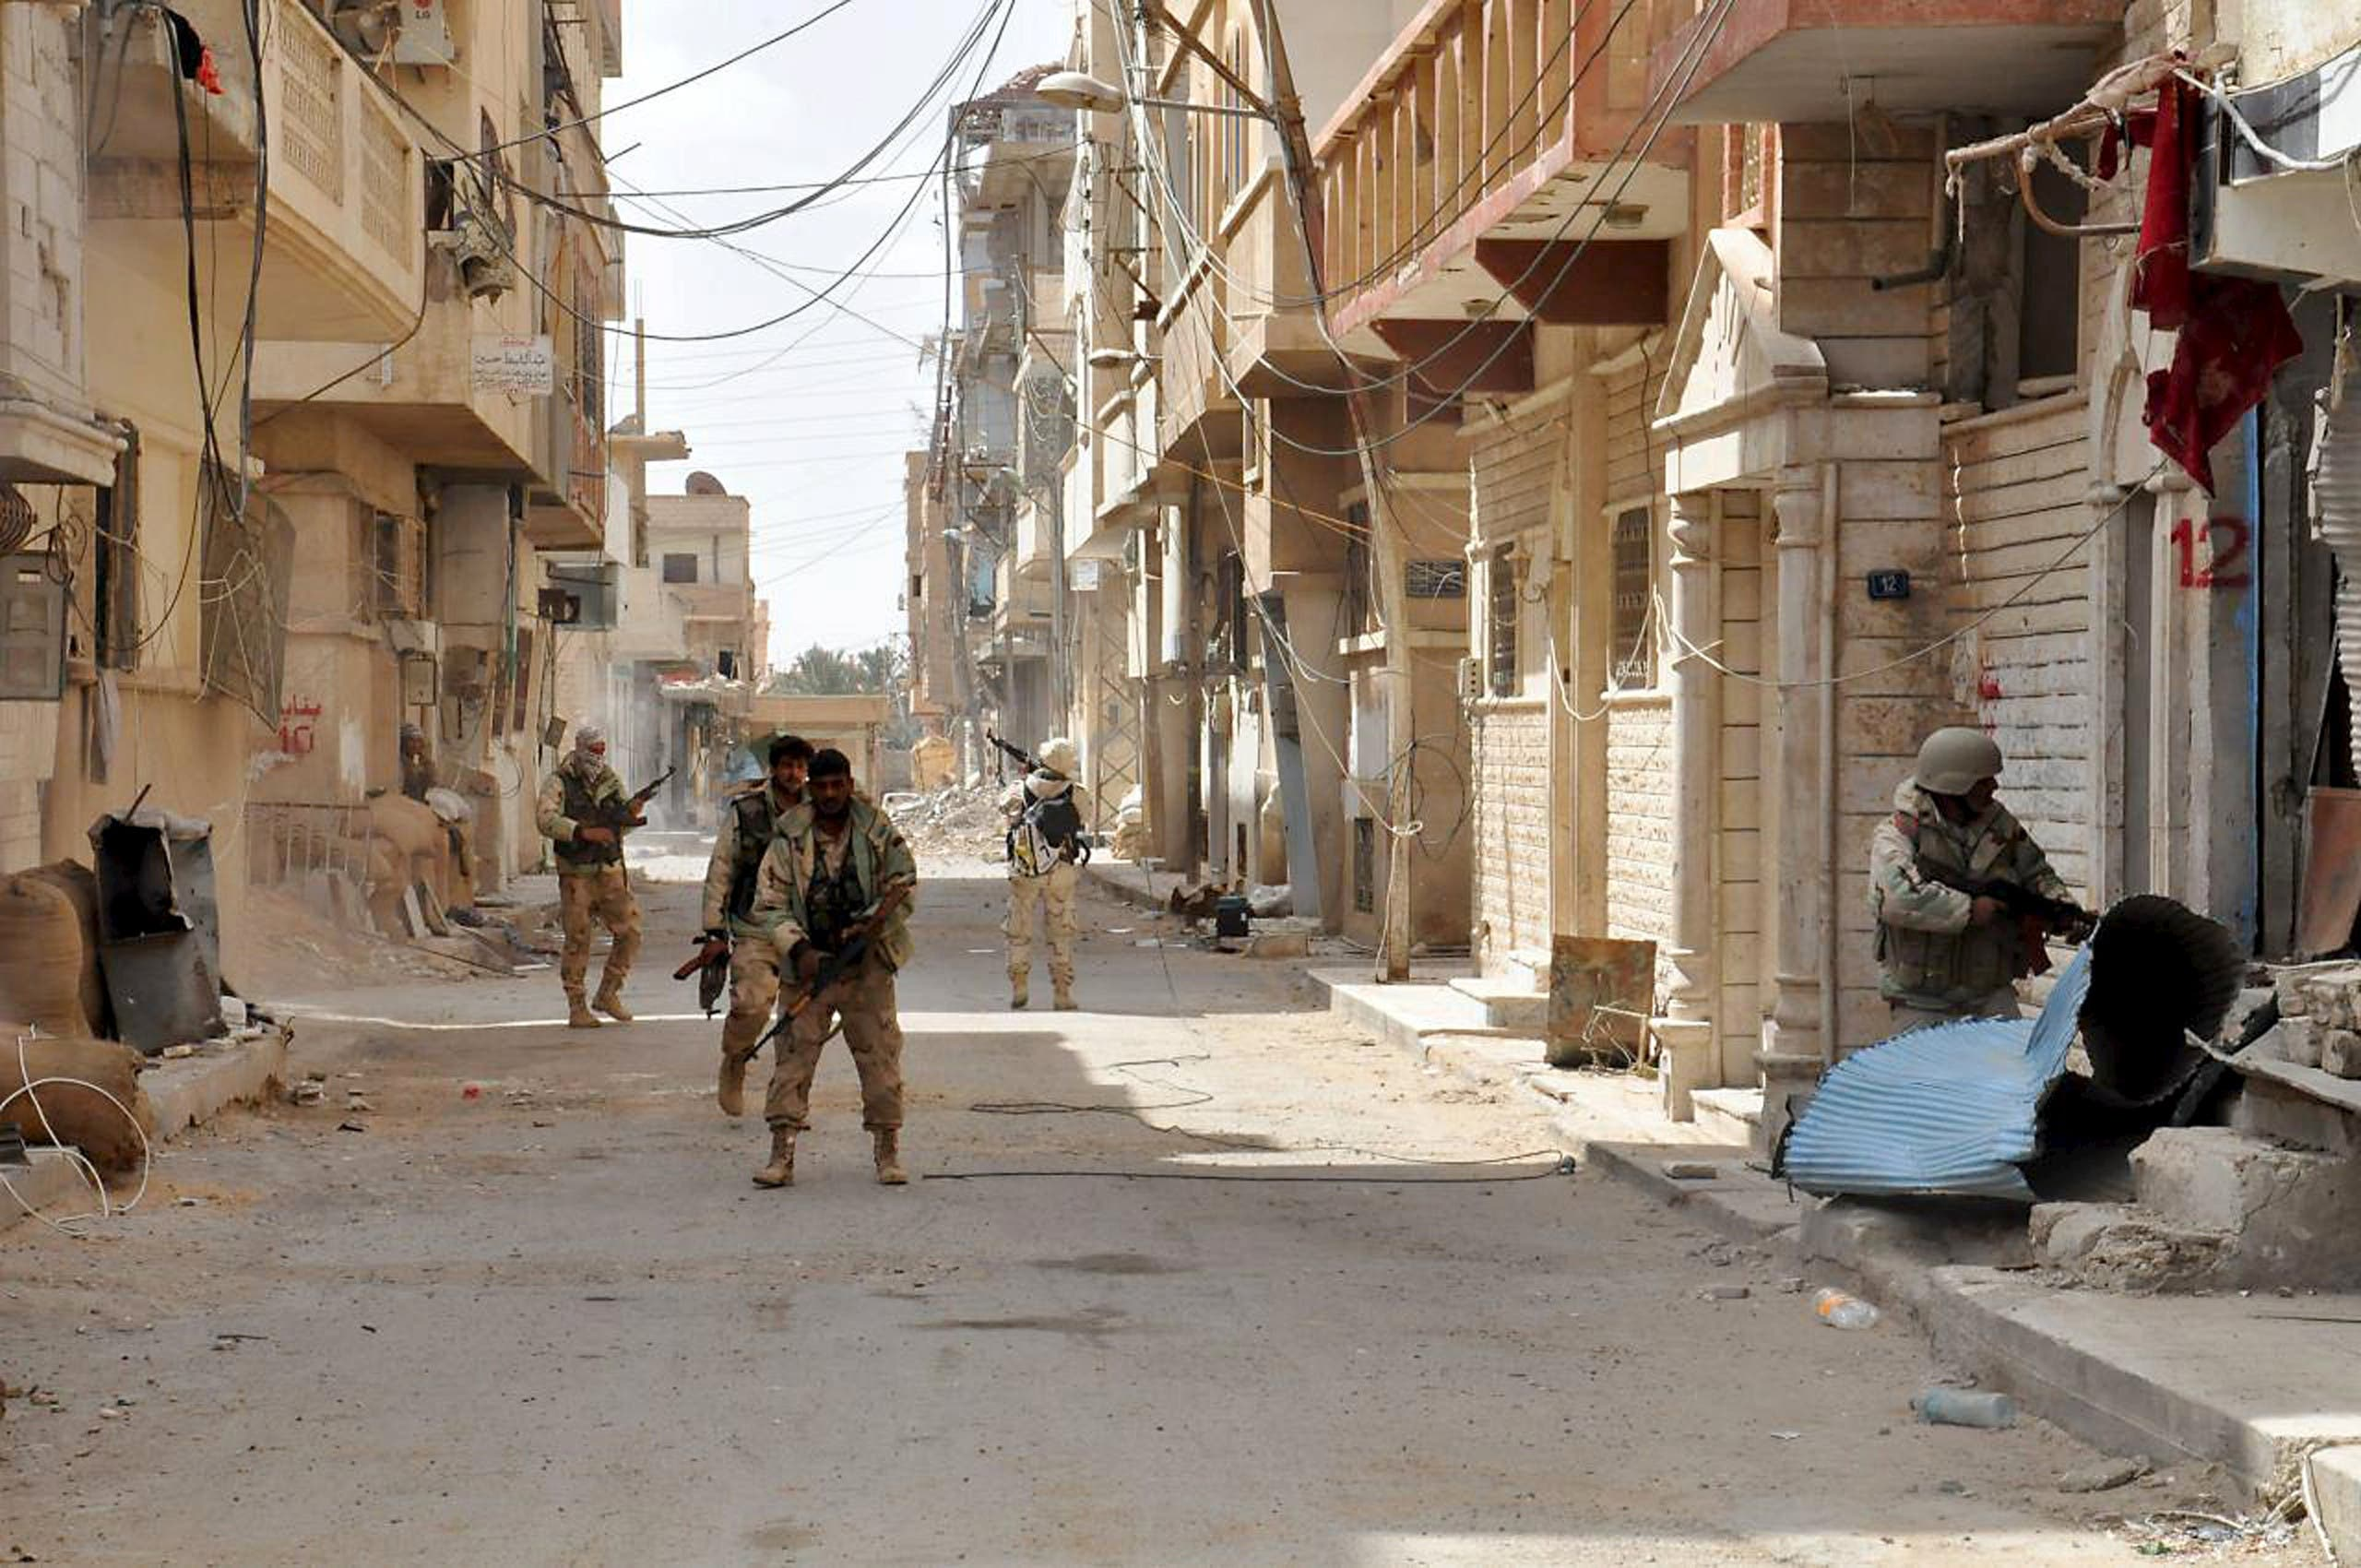 Forces loyal to Syria's President Bashar al-Assad walk with their weapons in Palmyra city after they recaptured it, in Homs Governorate on March 27, 2016. (Photo courtesy: SANA)